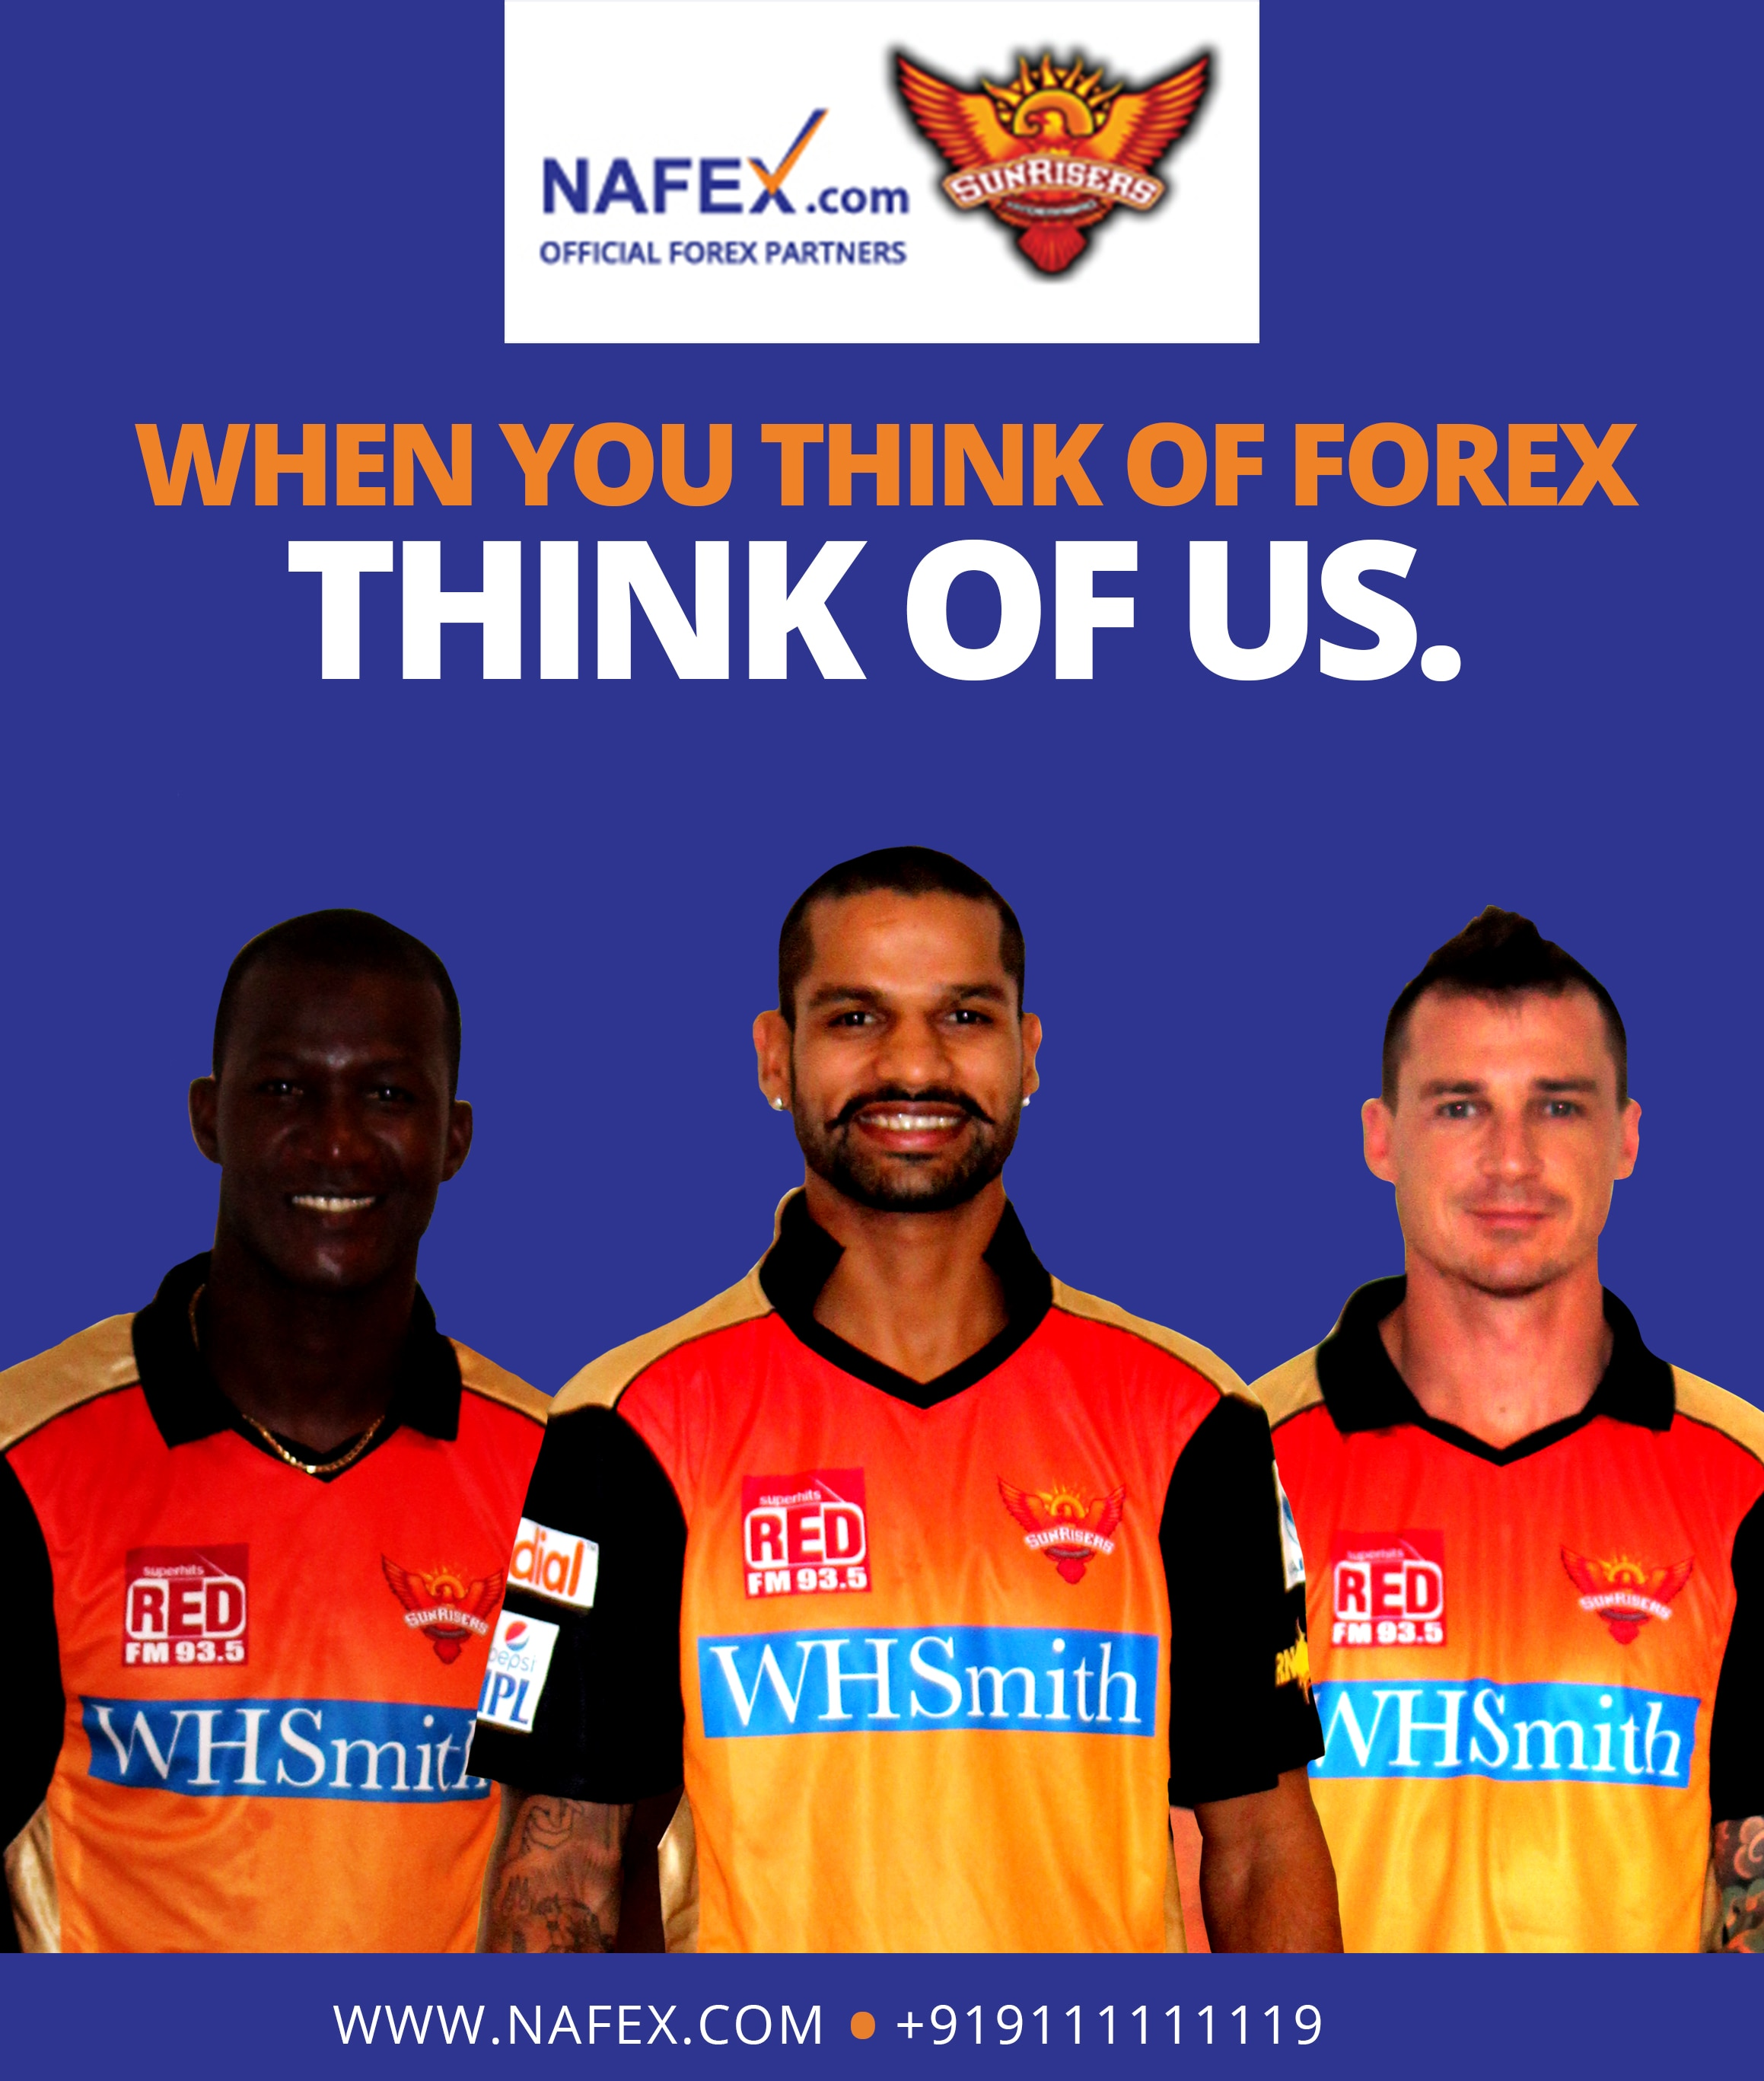 Nafex - Malviya Nagar  Foreign Currency Exchange Dealers Agents Malviya Nagar, Online Travellers Cheque & Forex Prepaid Card